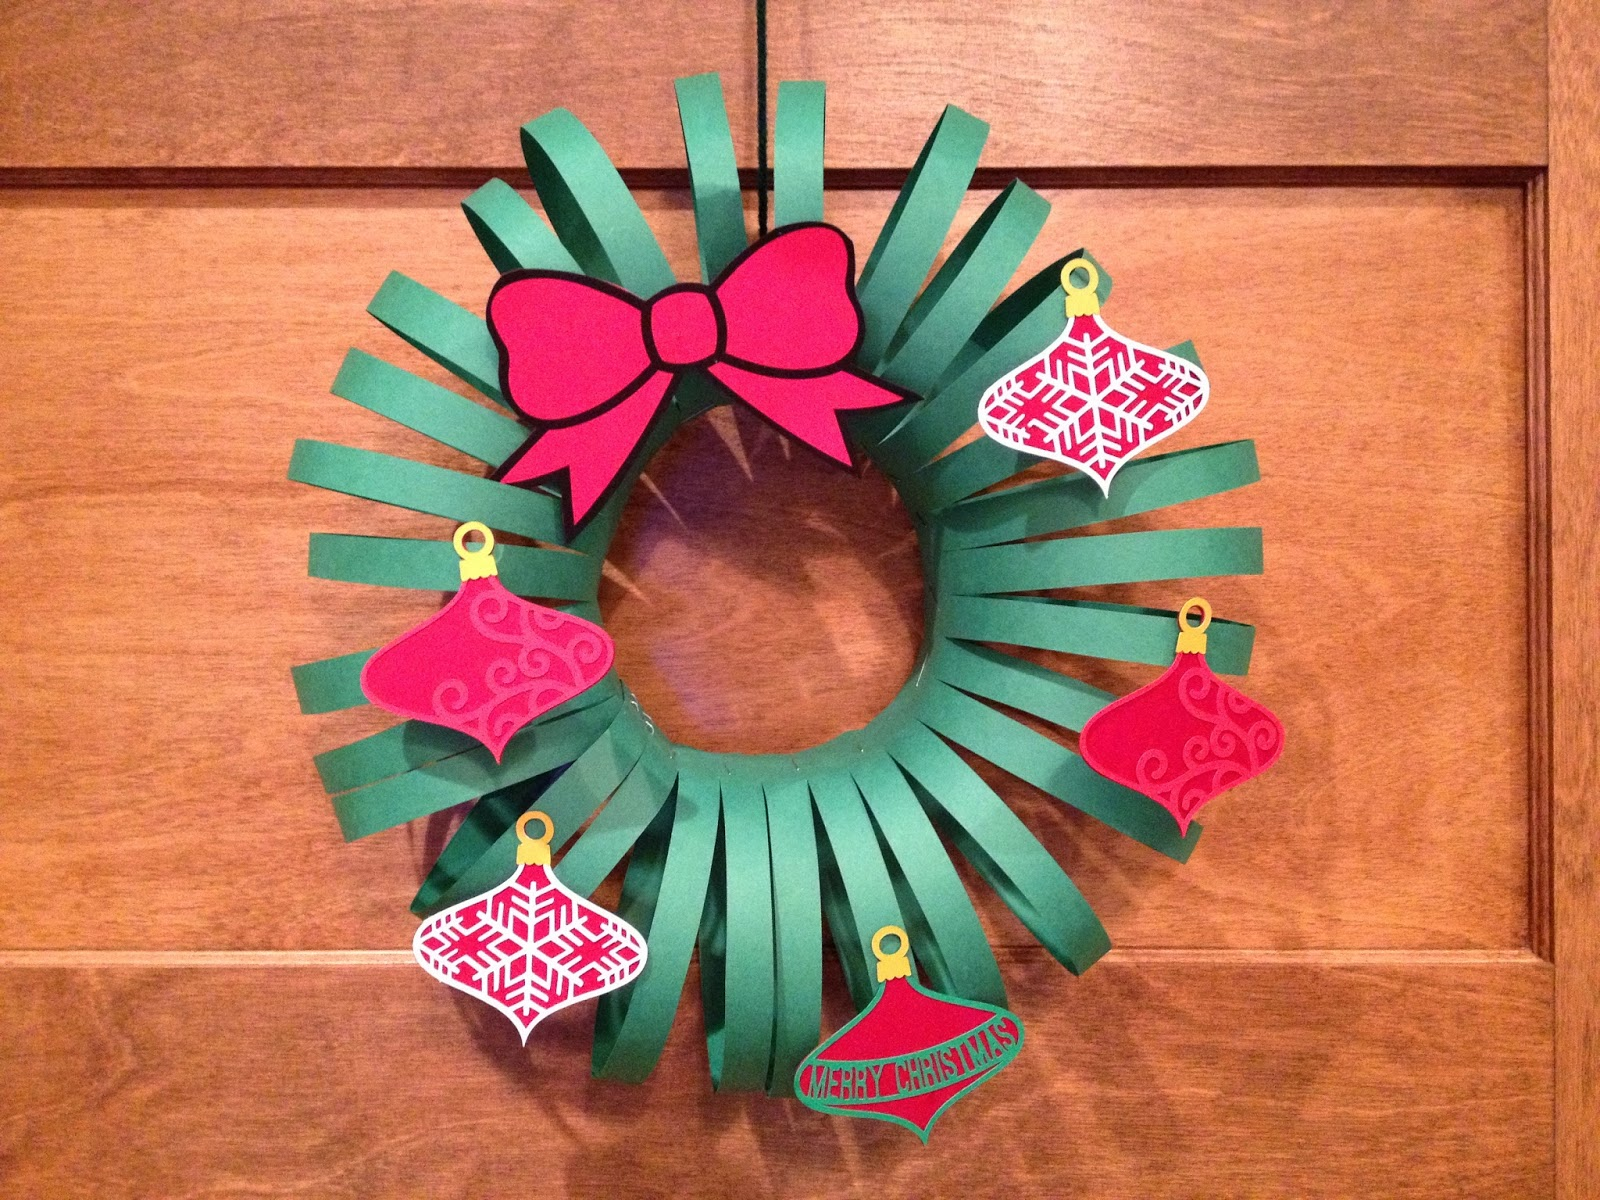 Christmas decorations using construction paper - Christmas Decorations Using Construction Paper 22